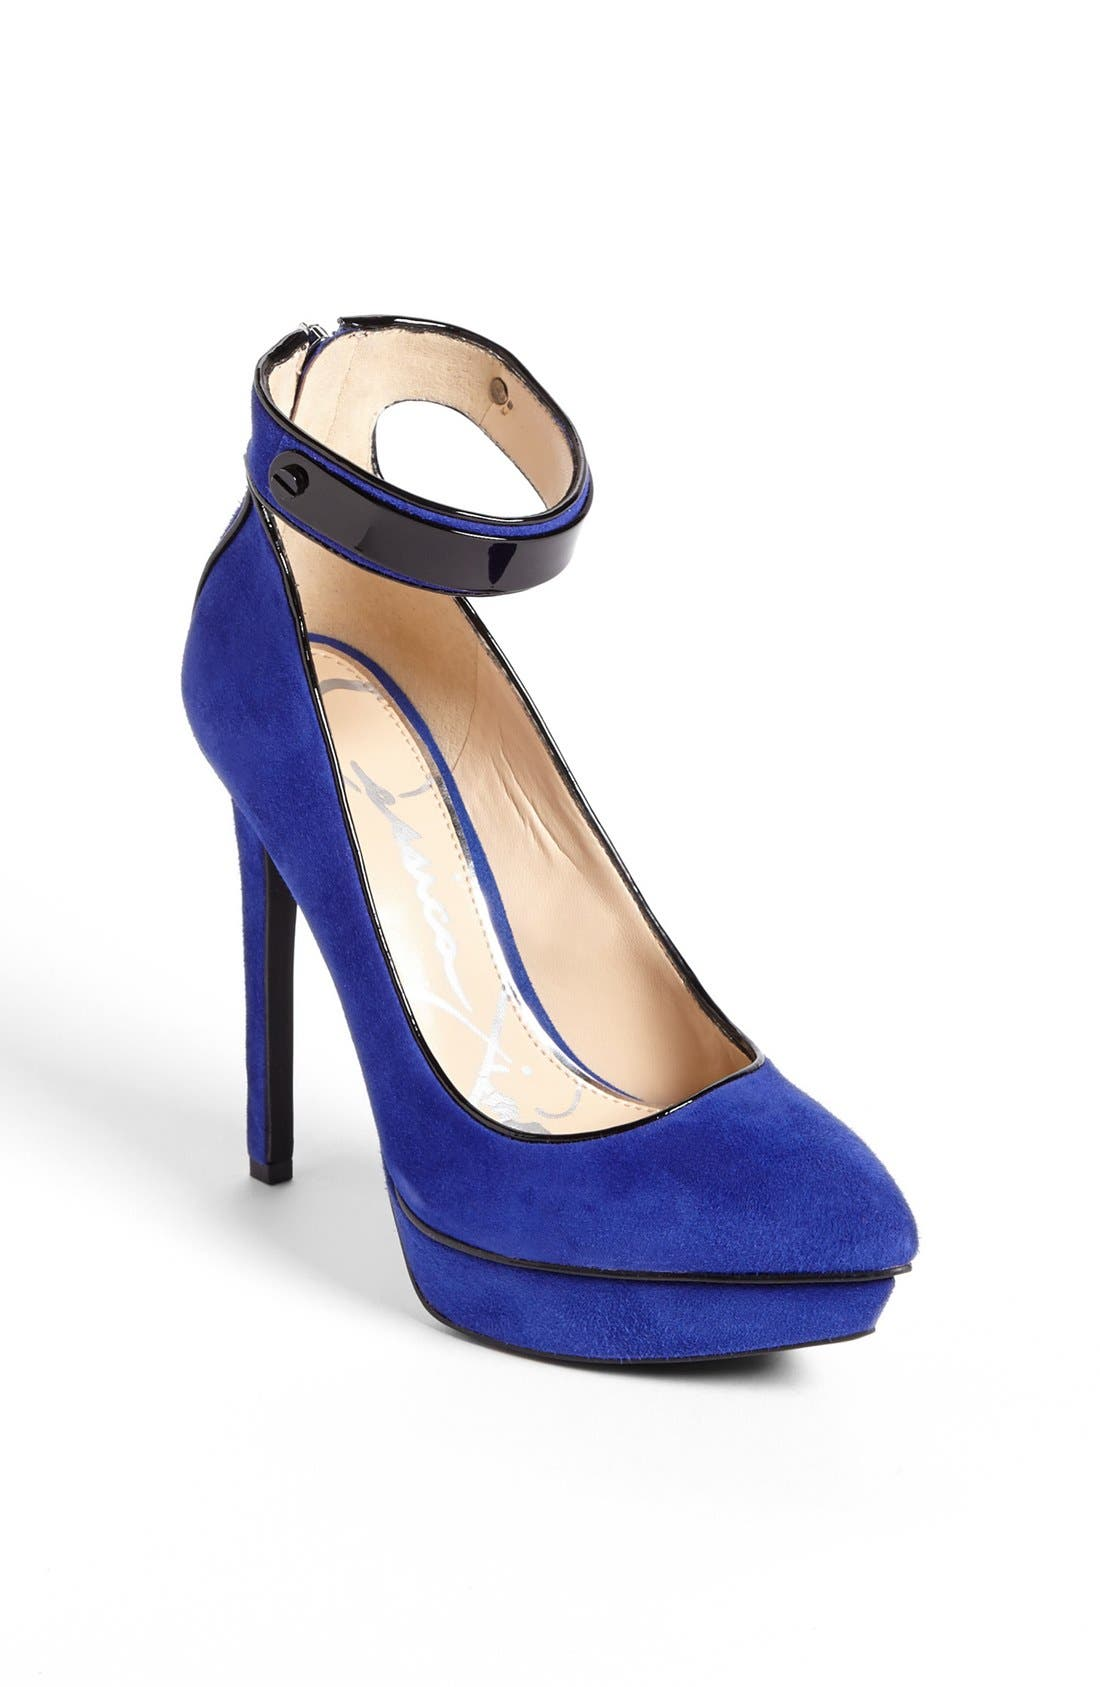 Alternate Image 1 Selected - Jessica Simpson 'Violla' Ankle Strap Pointy Toe Pump